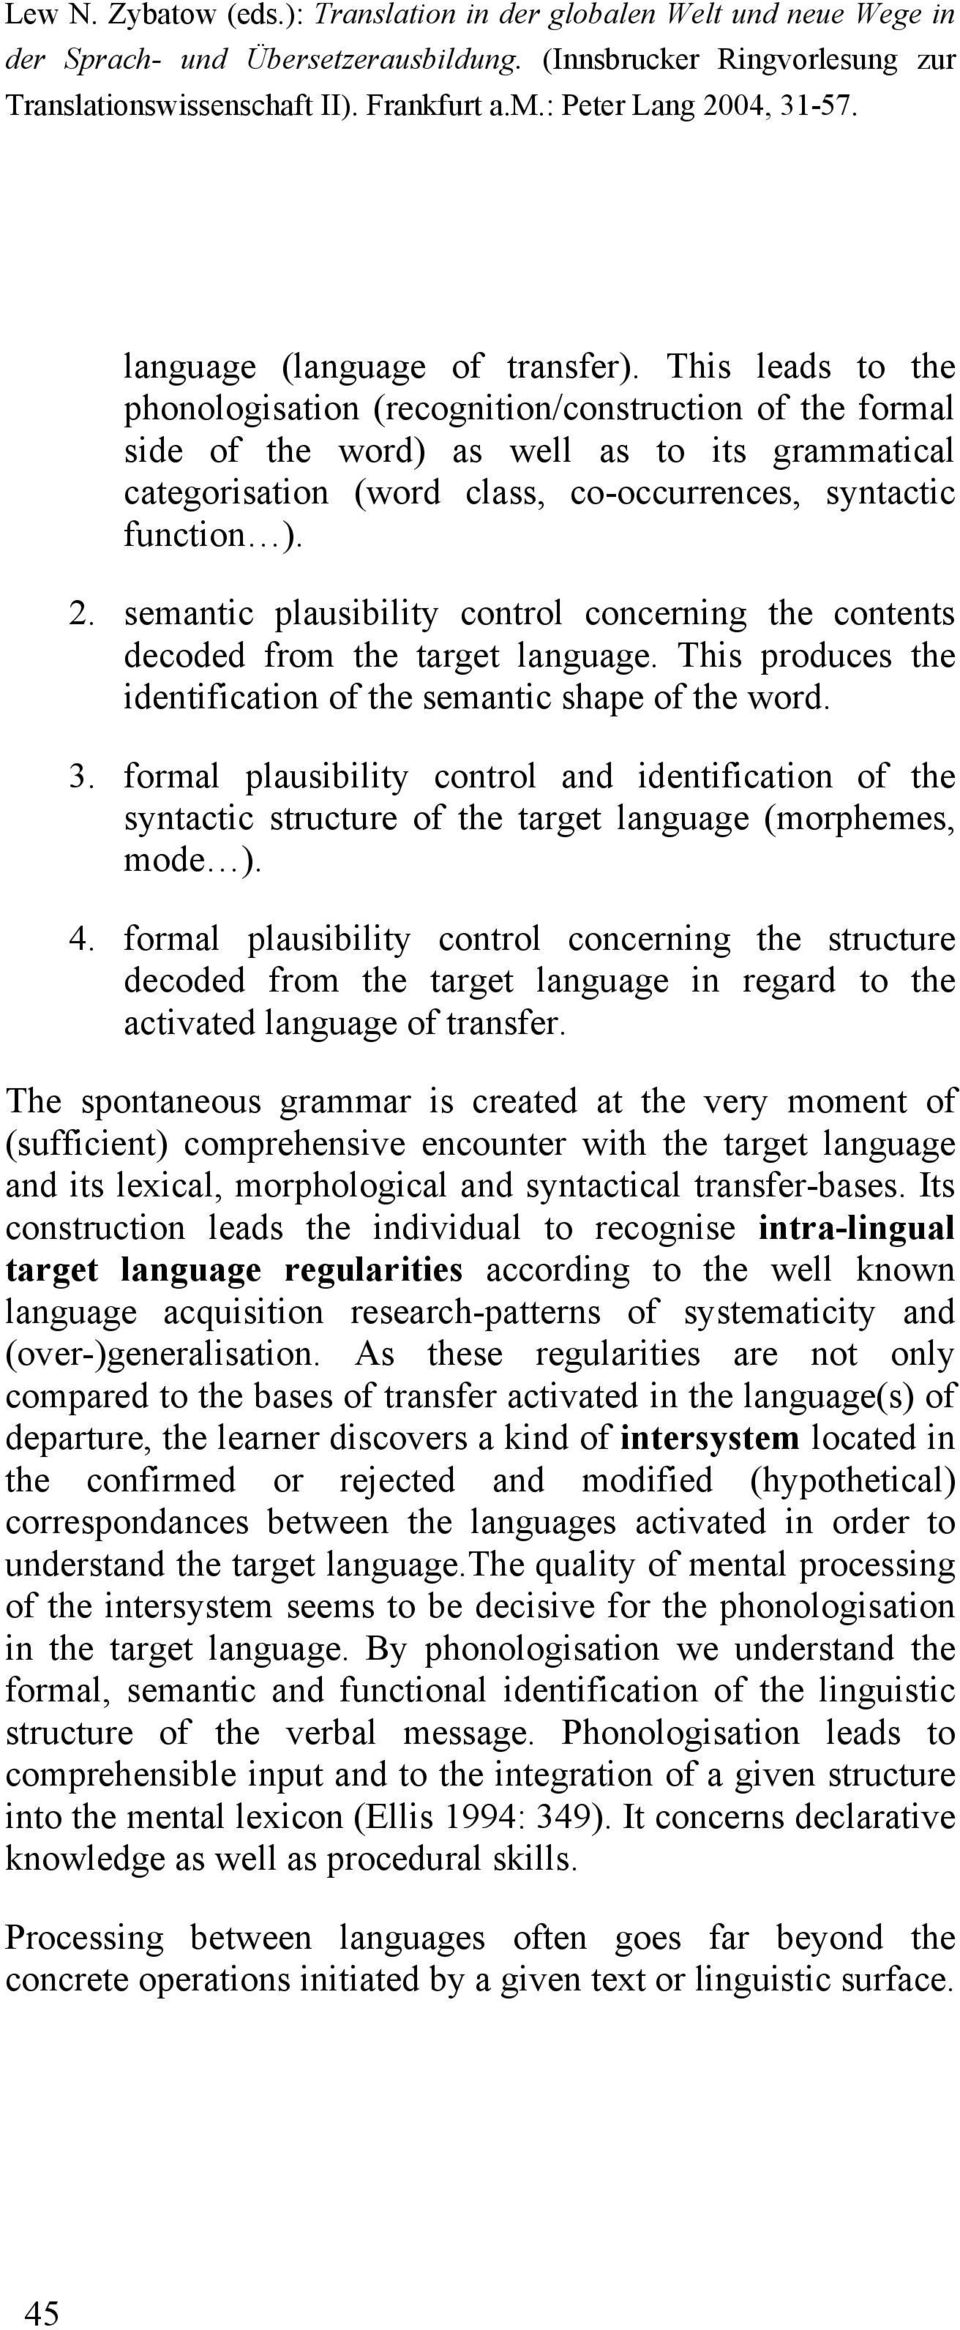 semantic plausibility control concerning the contents decoded from the target language. This produces the identification of the semantic shape of the word. 3.